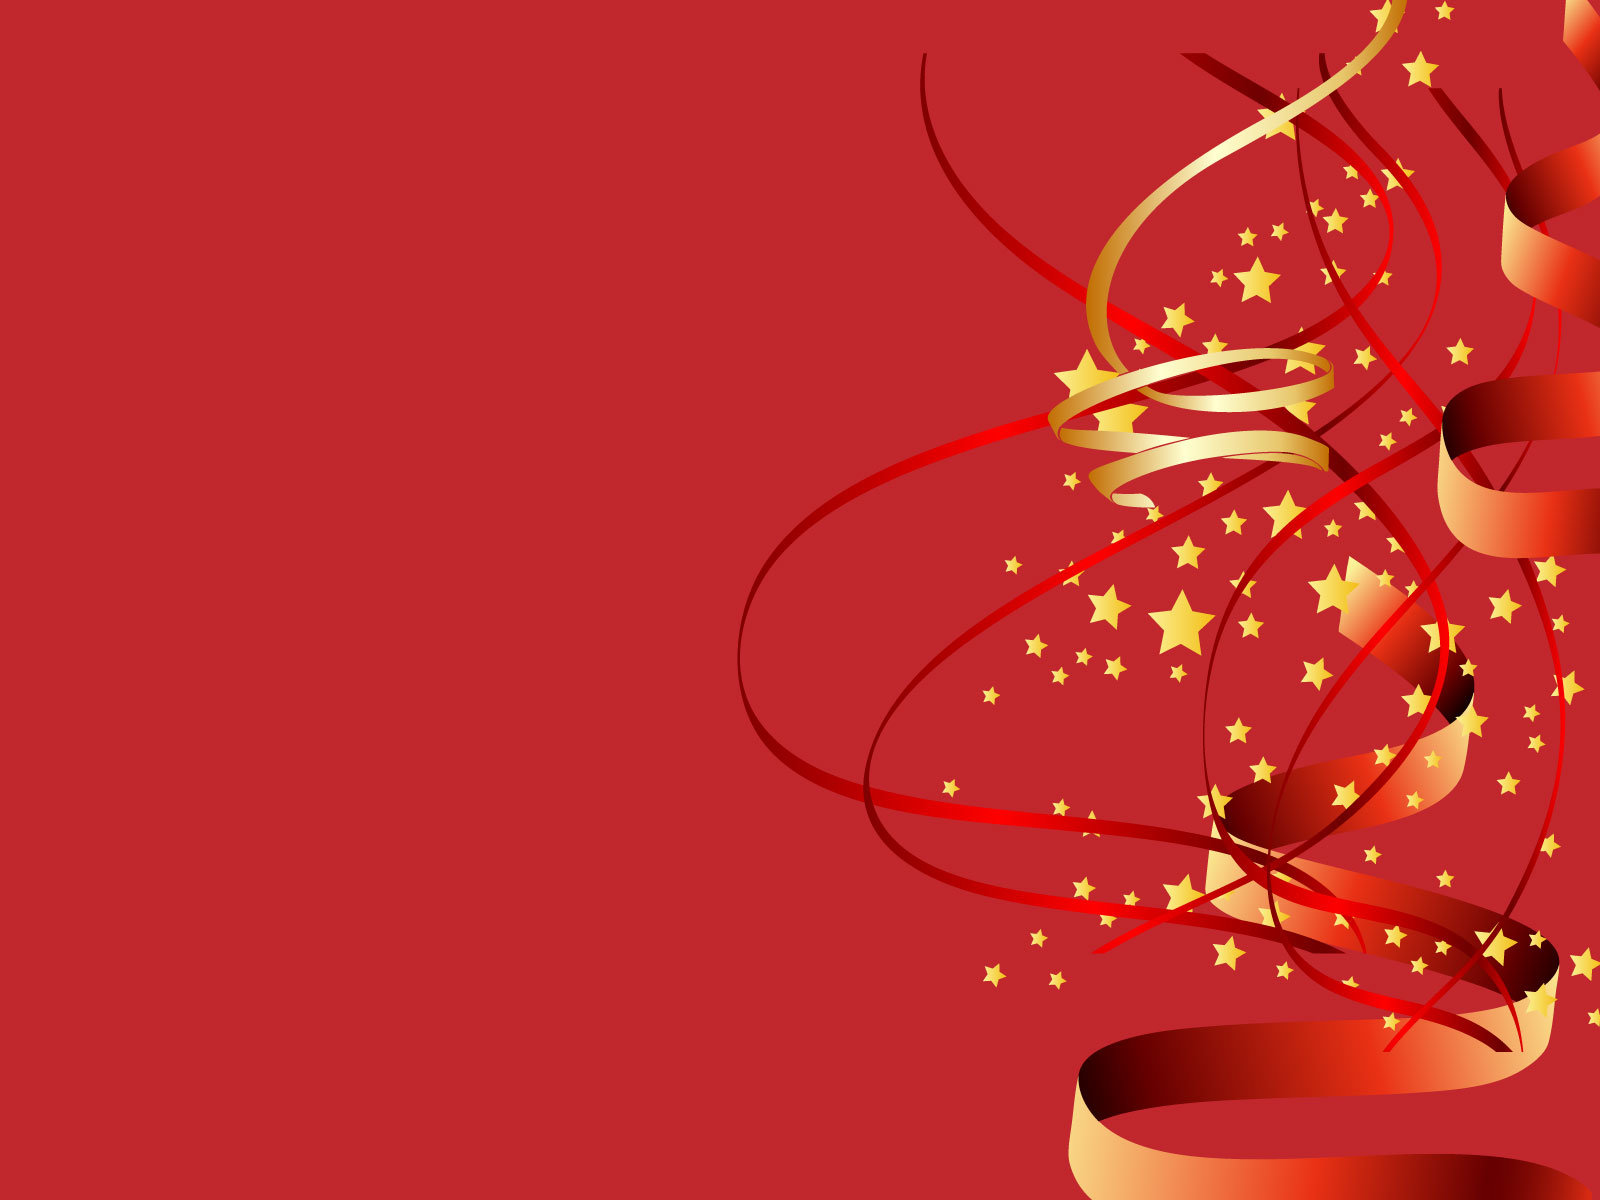 Free Download Cool Wallpapers Happy New Year Wallpaper